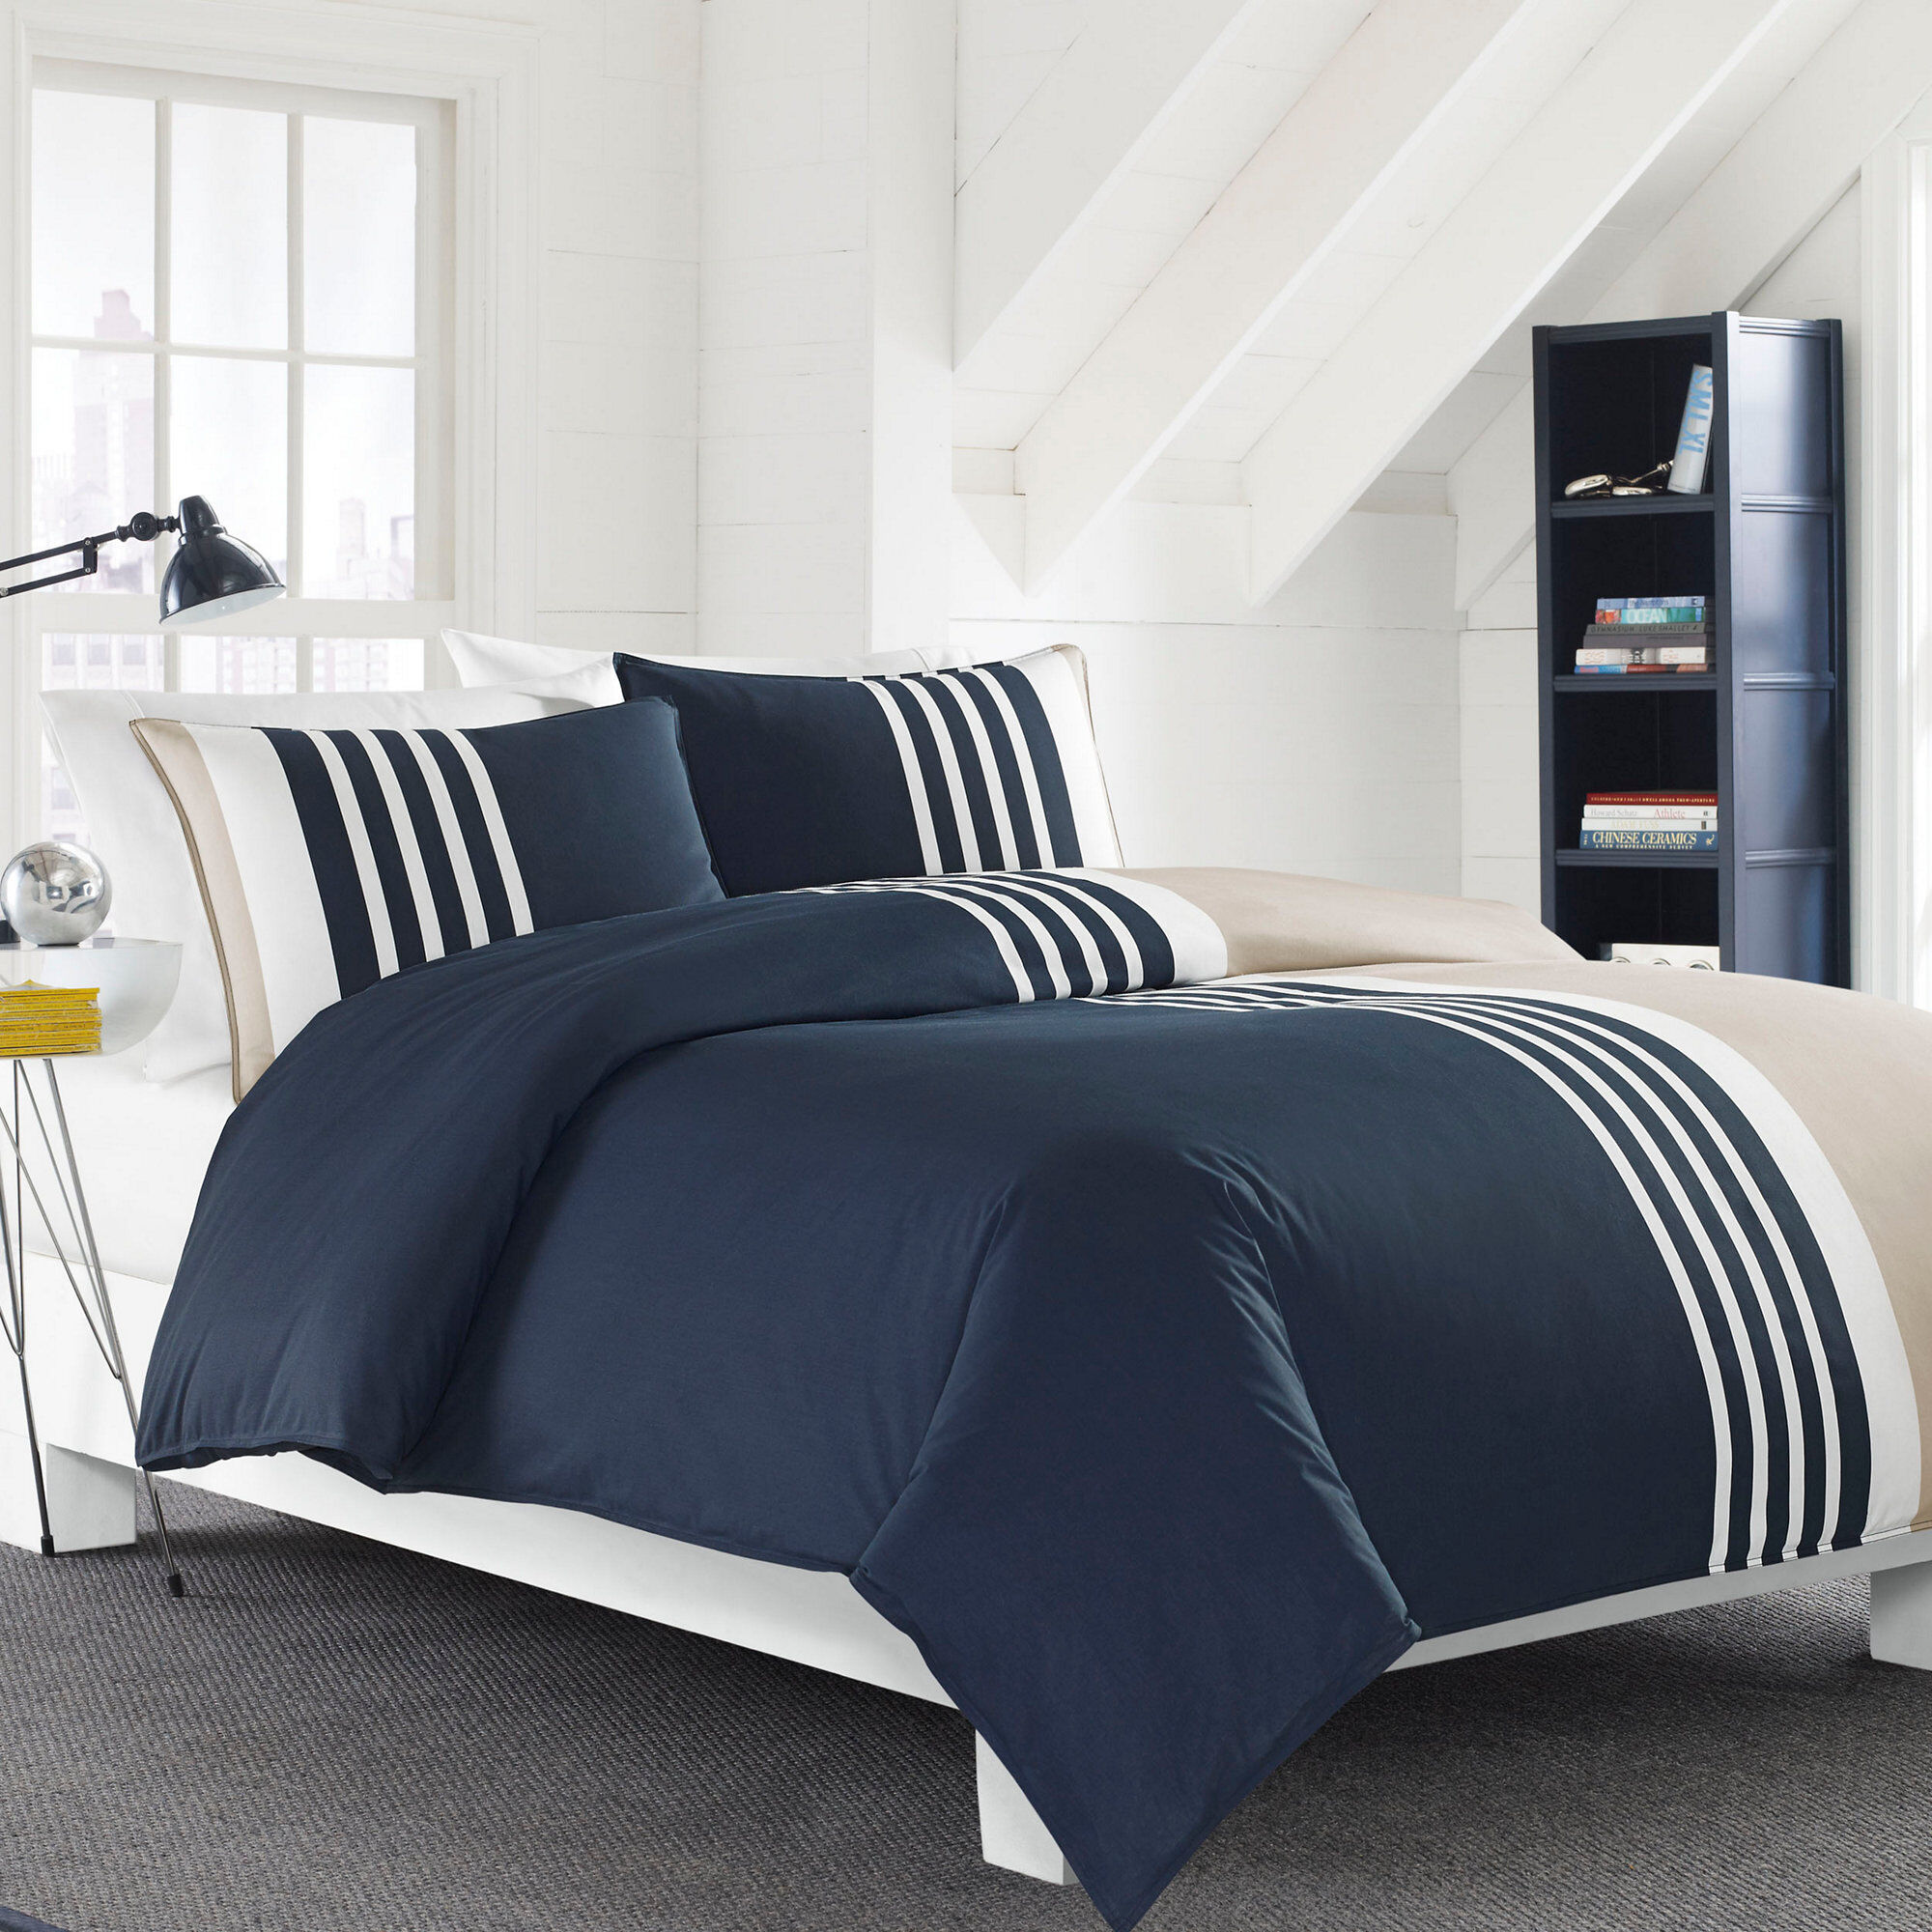 Duvet And Comforter Sets Aport Comforter Set